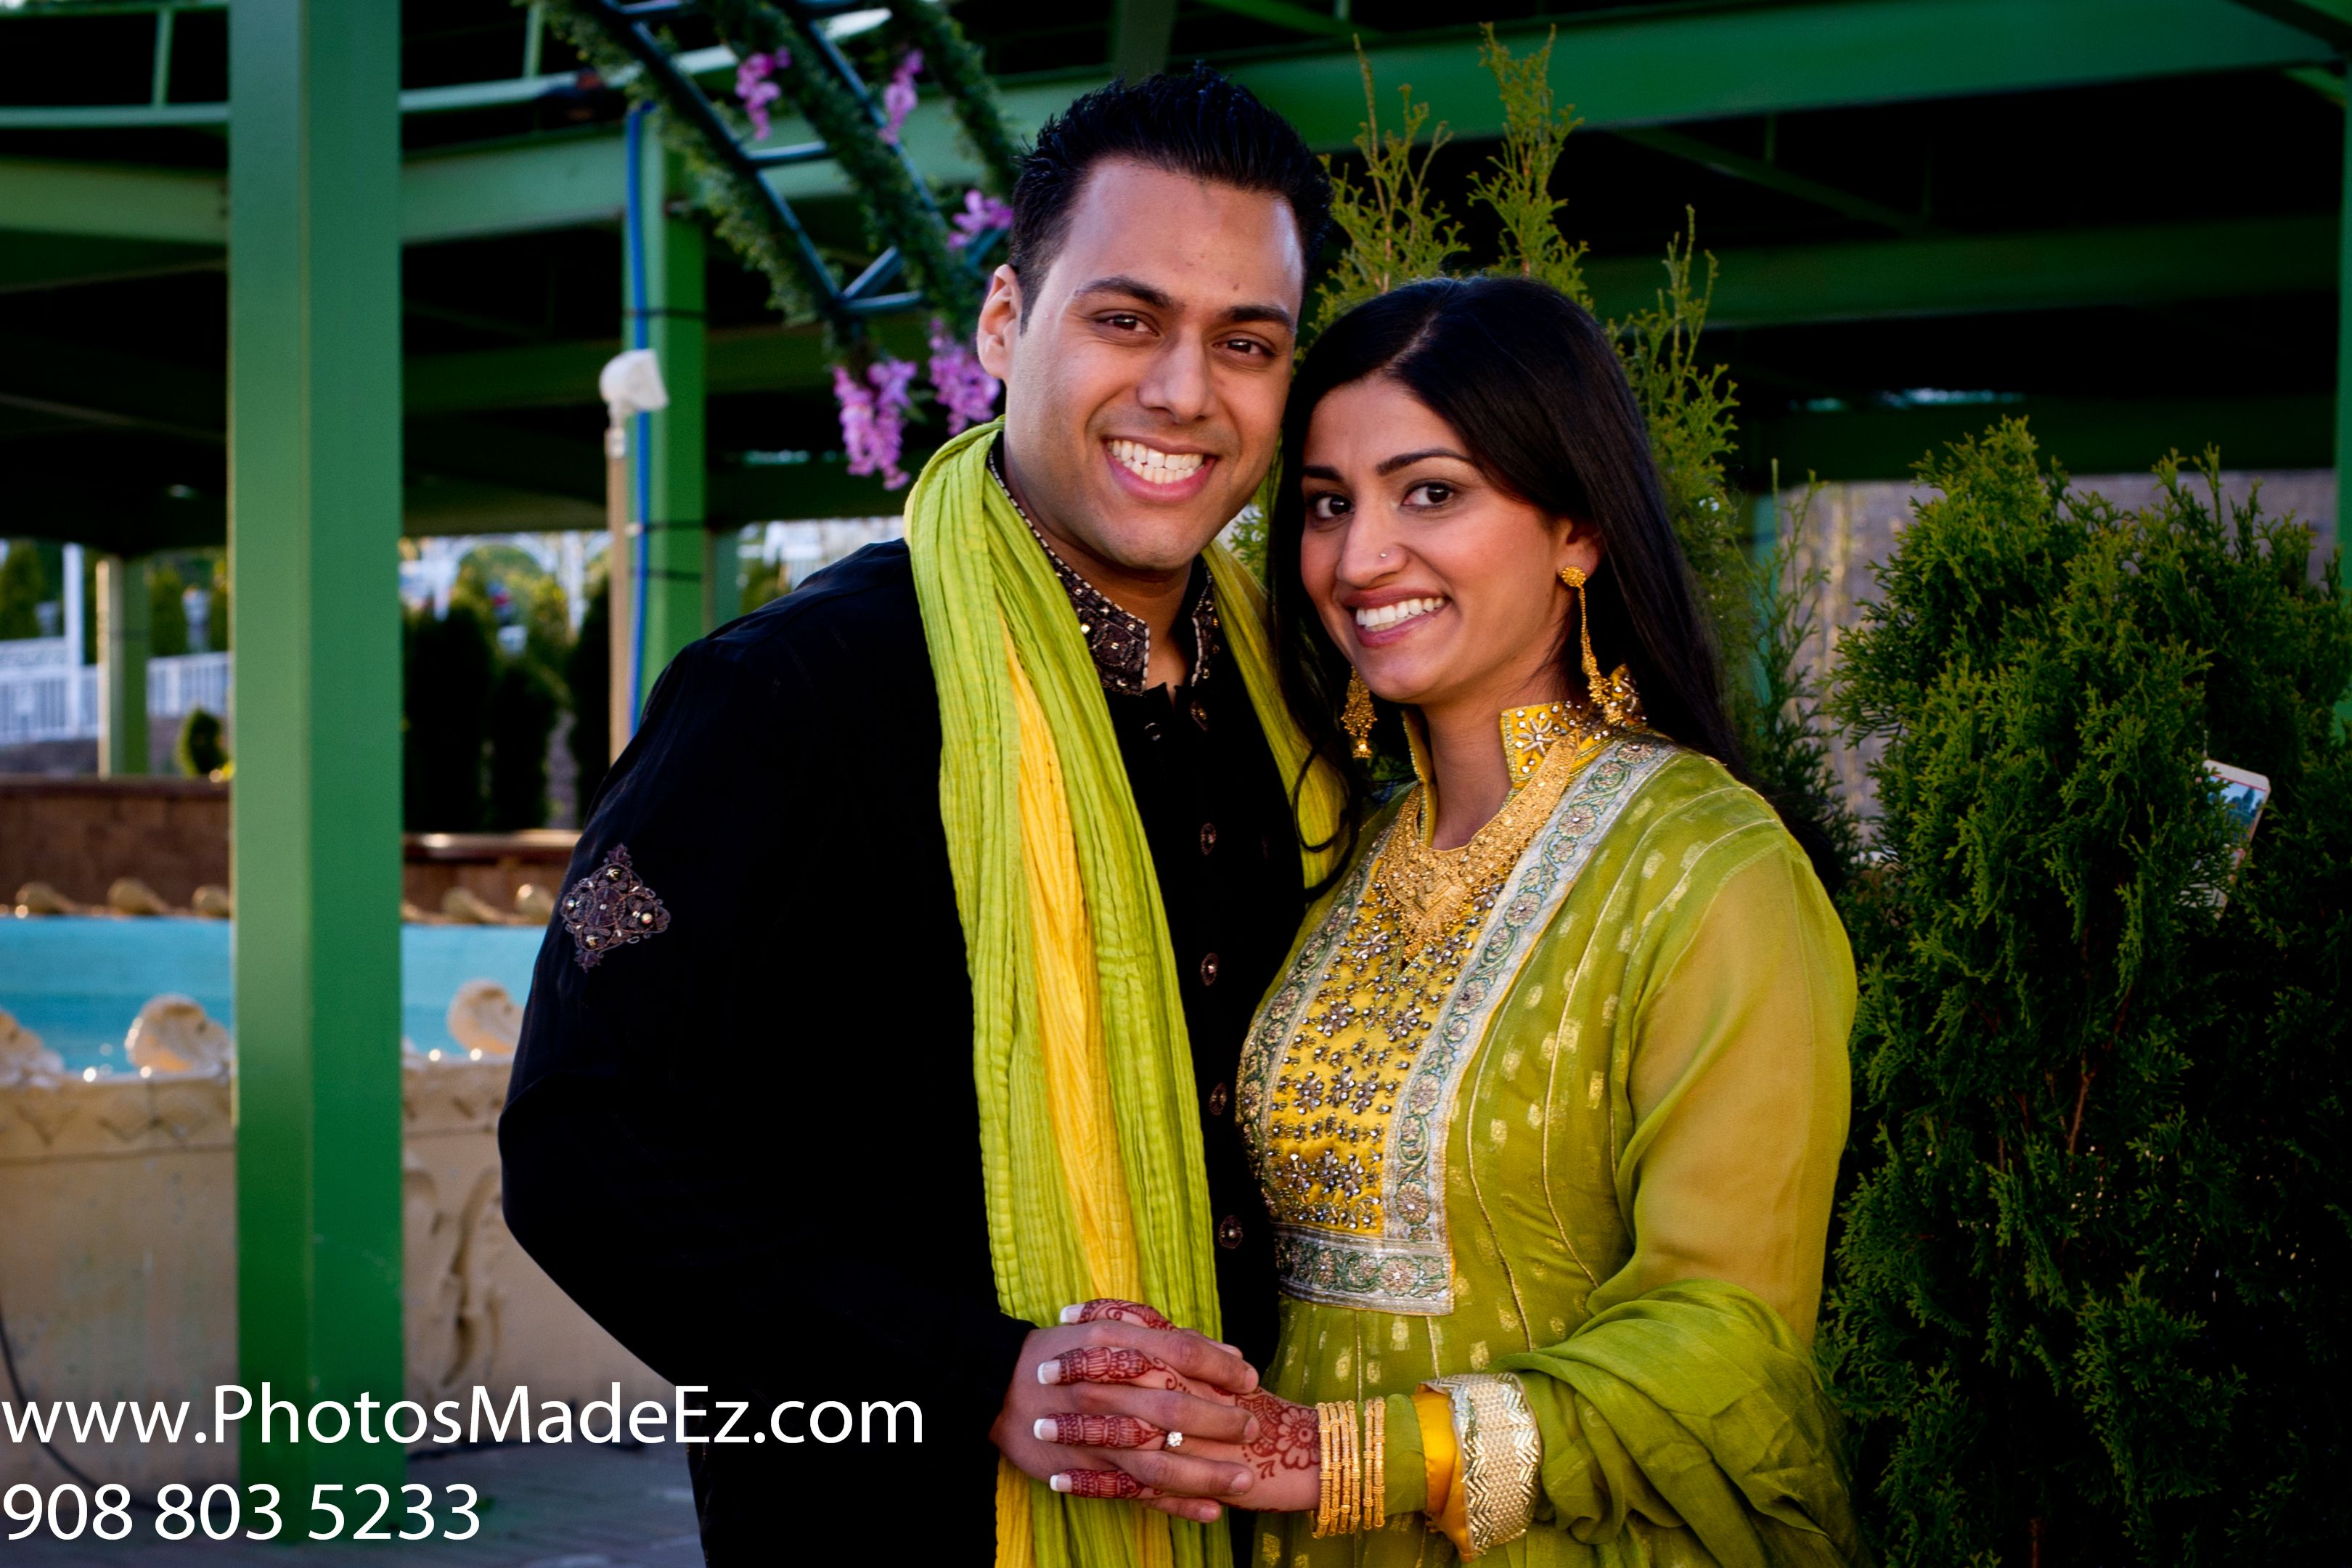 Mixed Wedding in New Jersey Indian Groom and Pakistani